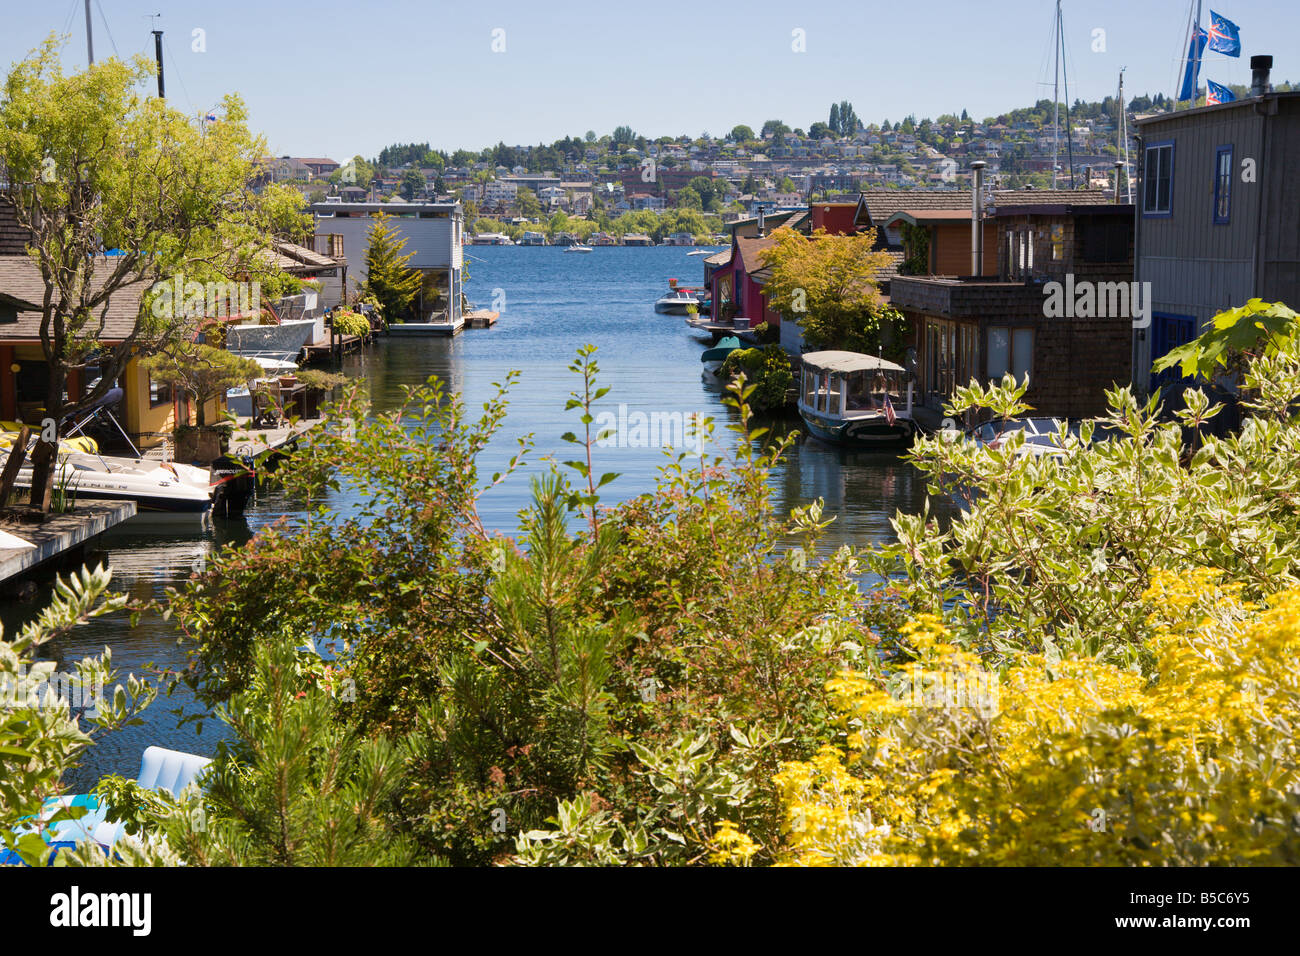 Floating homes on west shore of Lake Union in Seattle, Washington - Stock Image